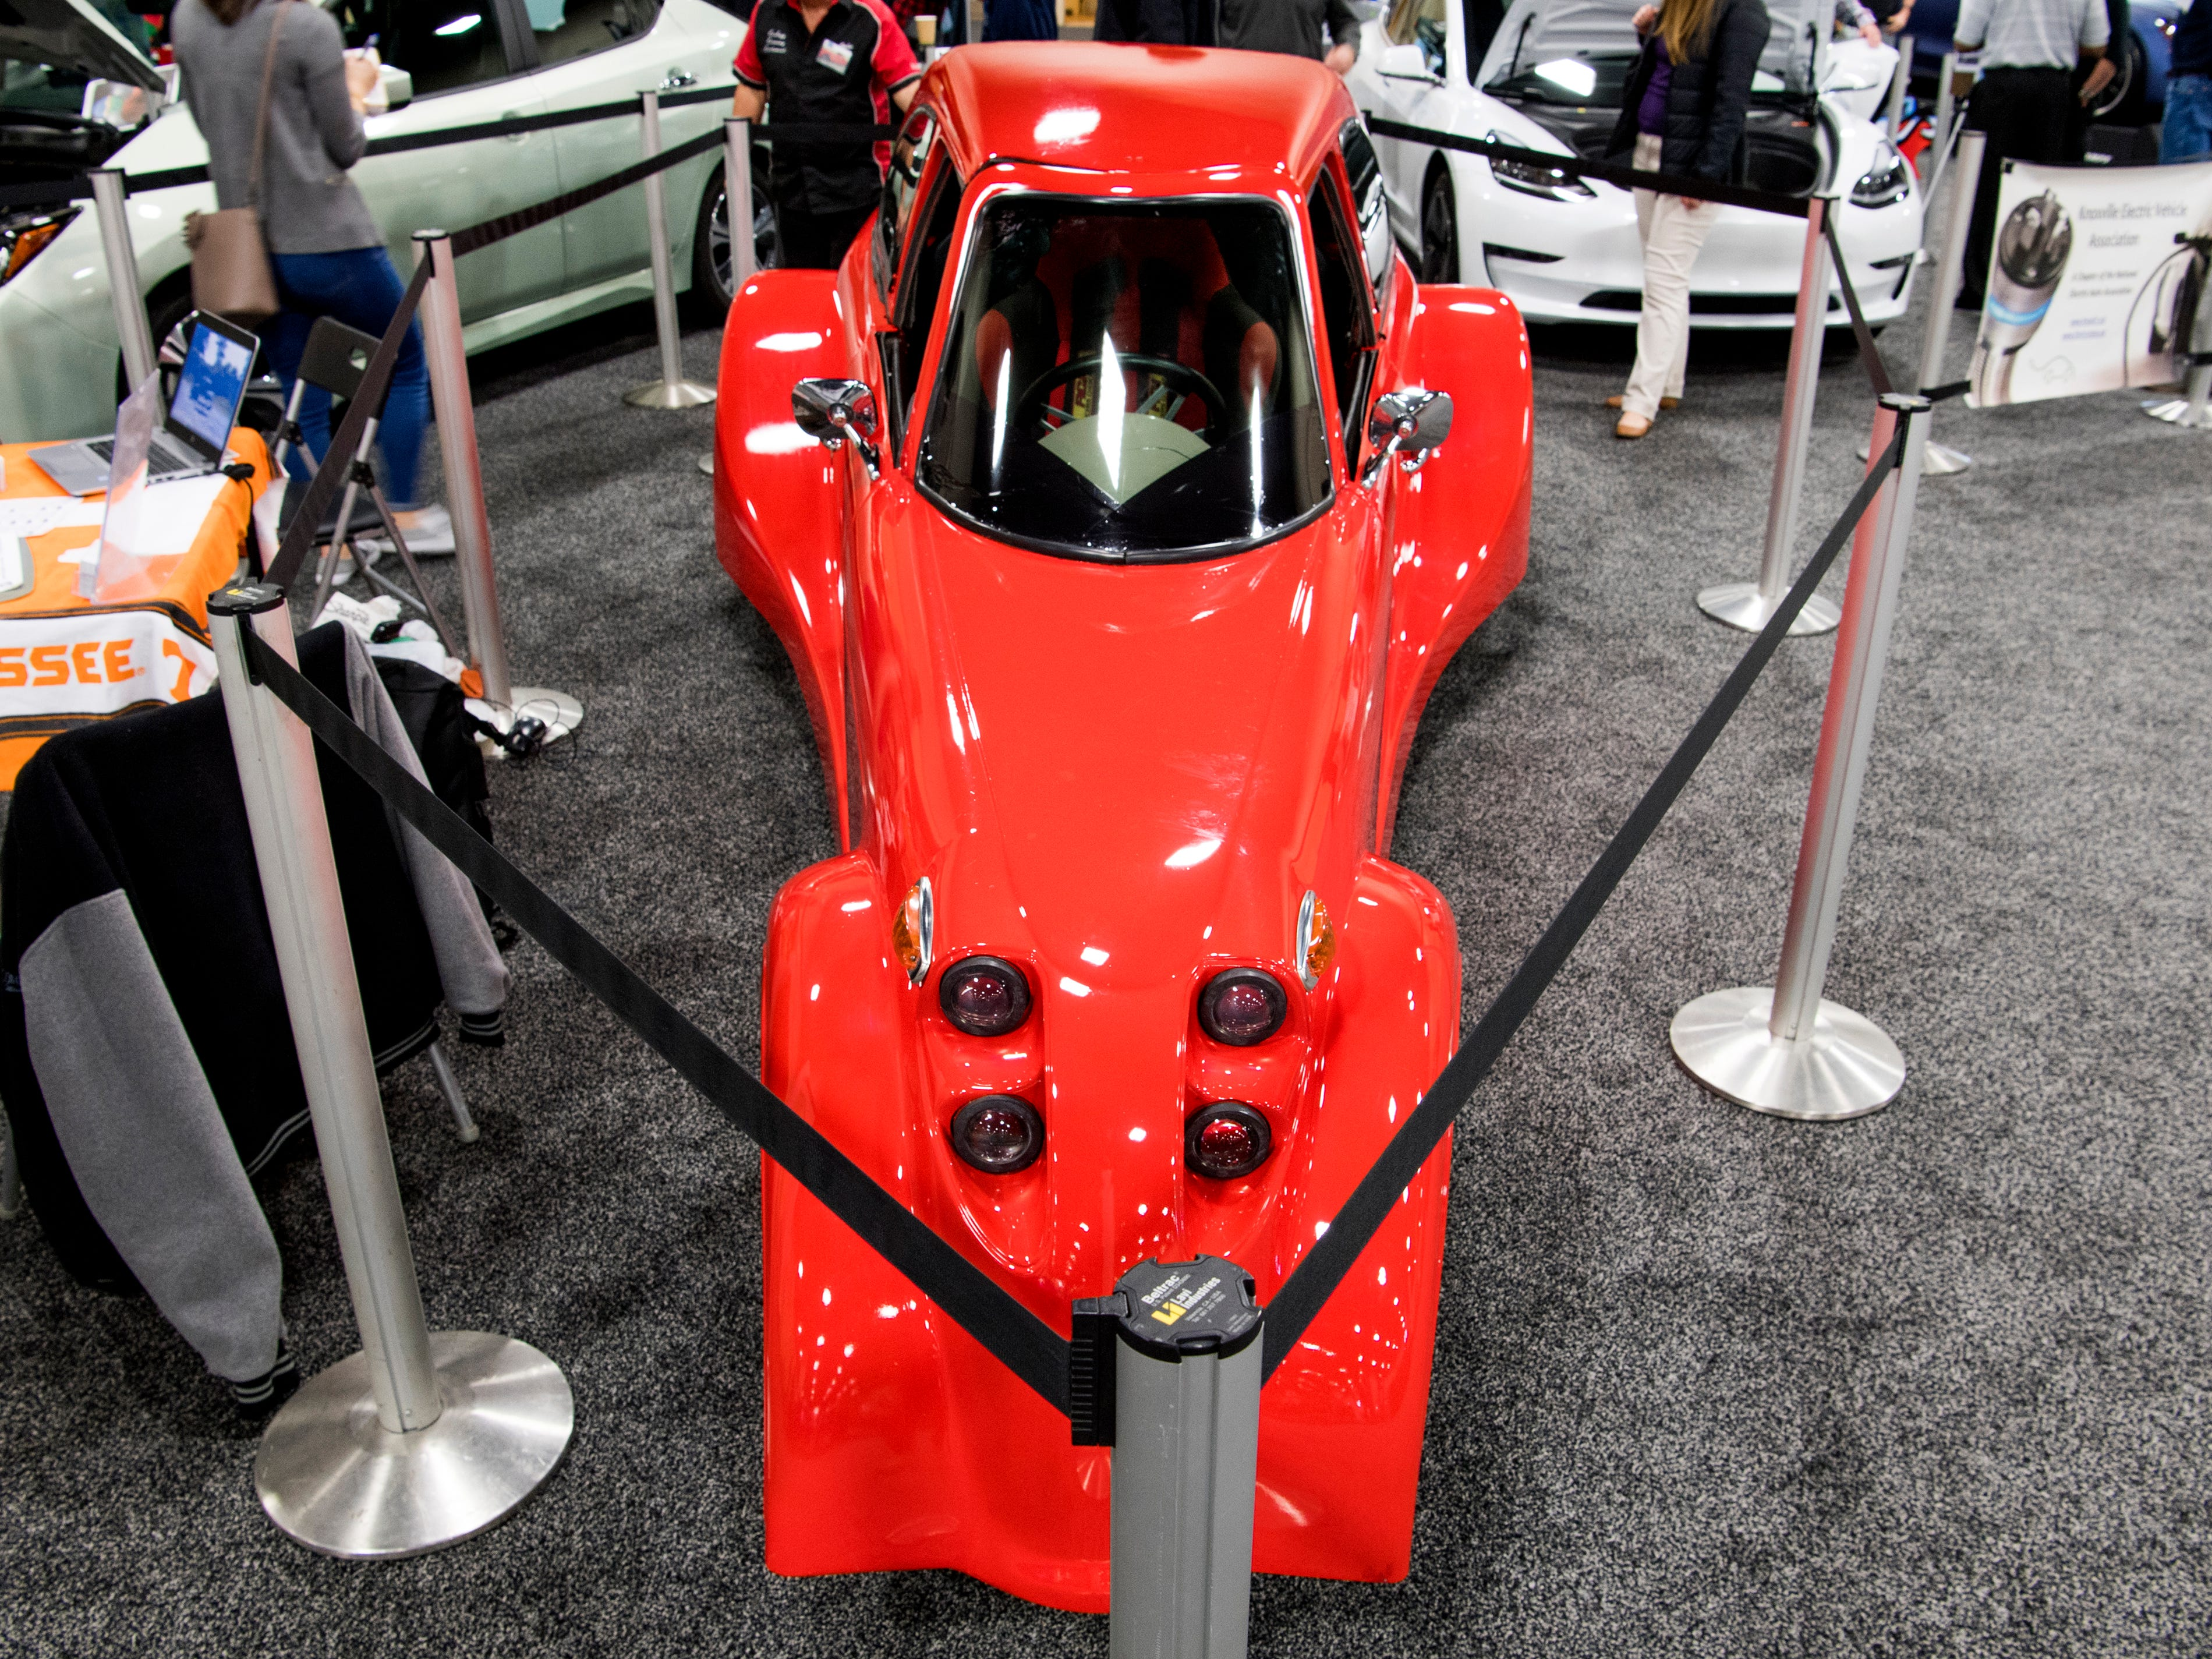 The Defiant EV3 Roadster at the Knox News Auto Show held at the Knoxville Convention Center on Friday, February 22, 2019.